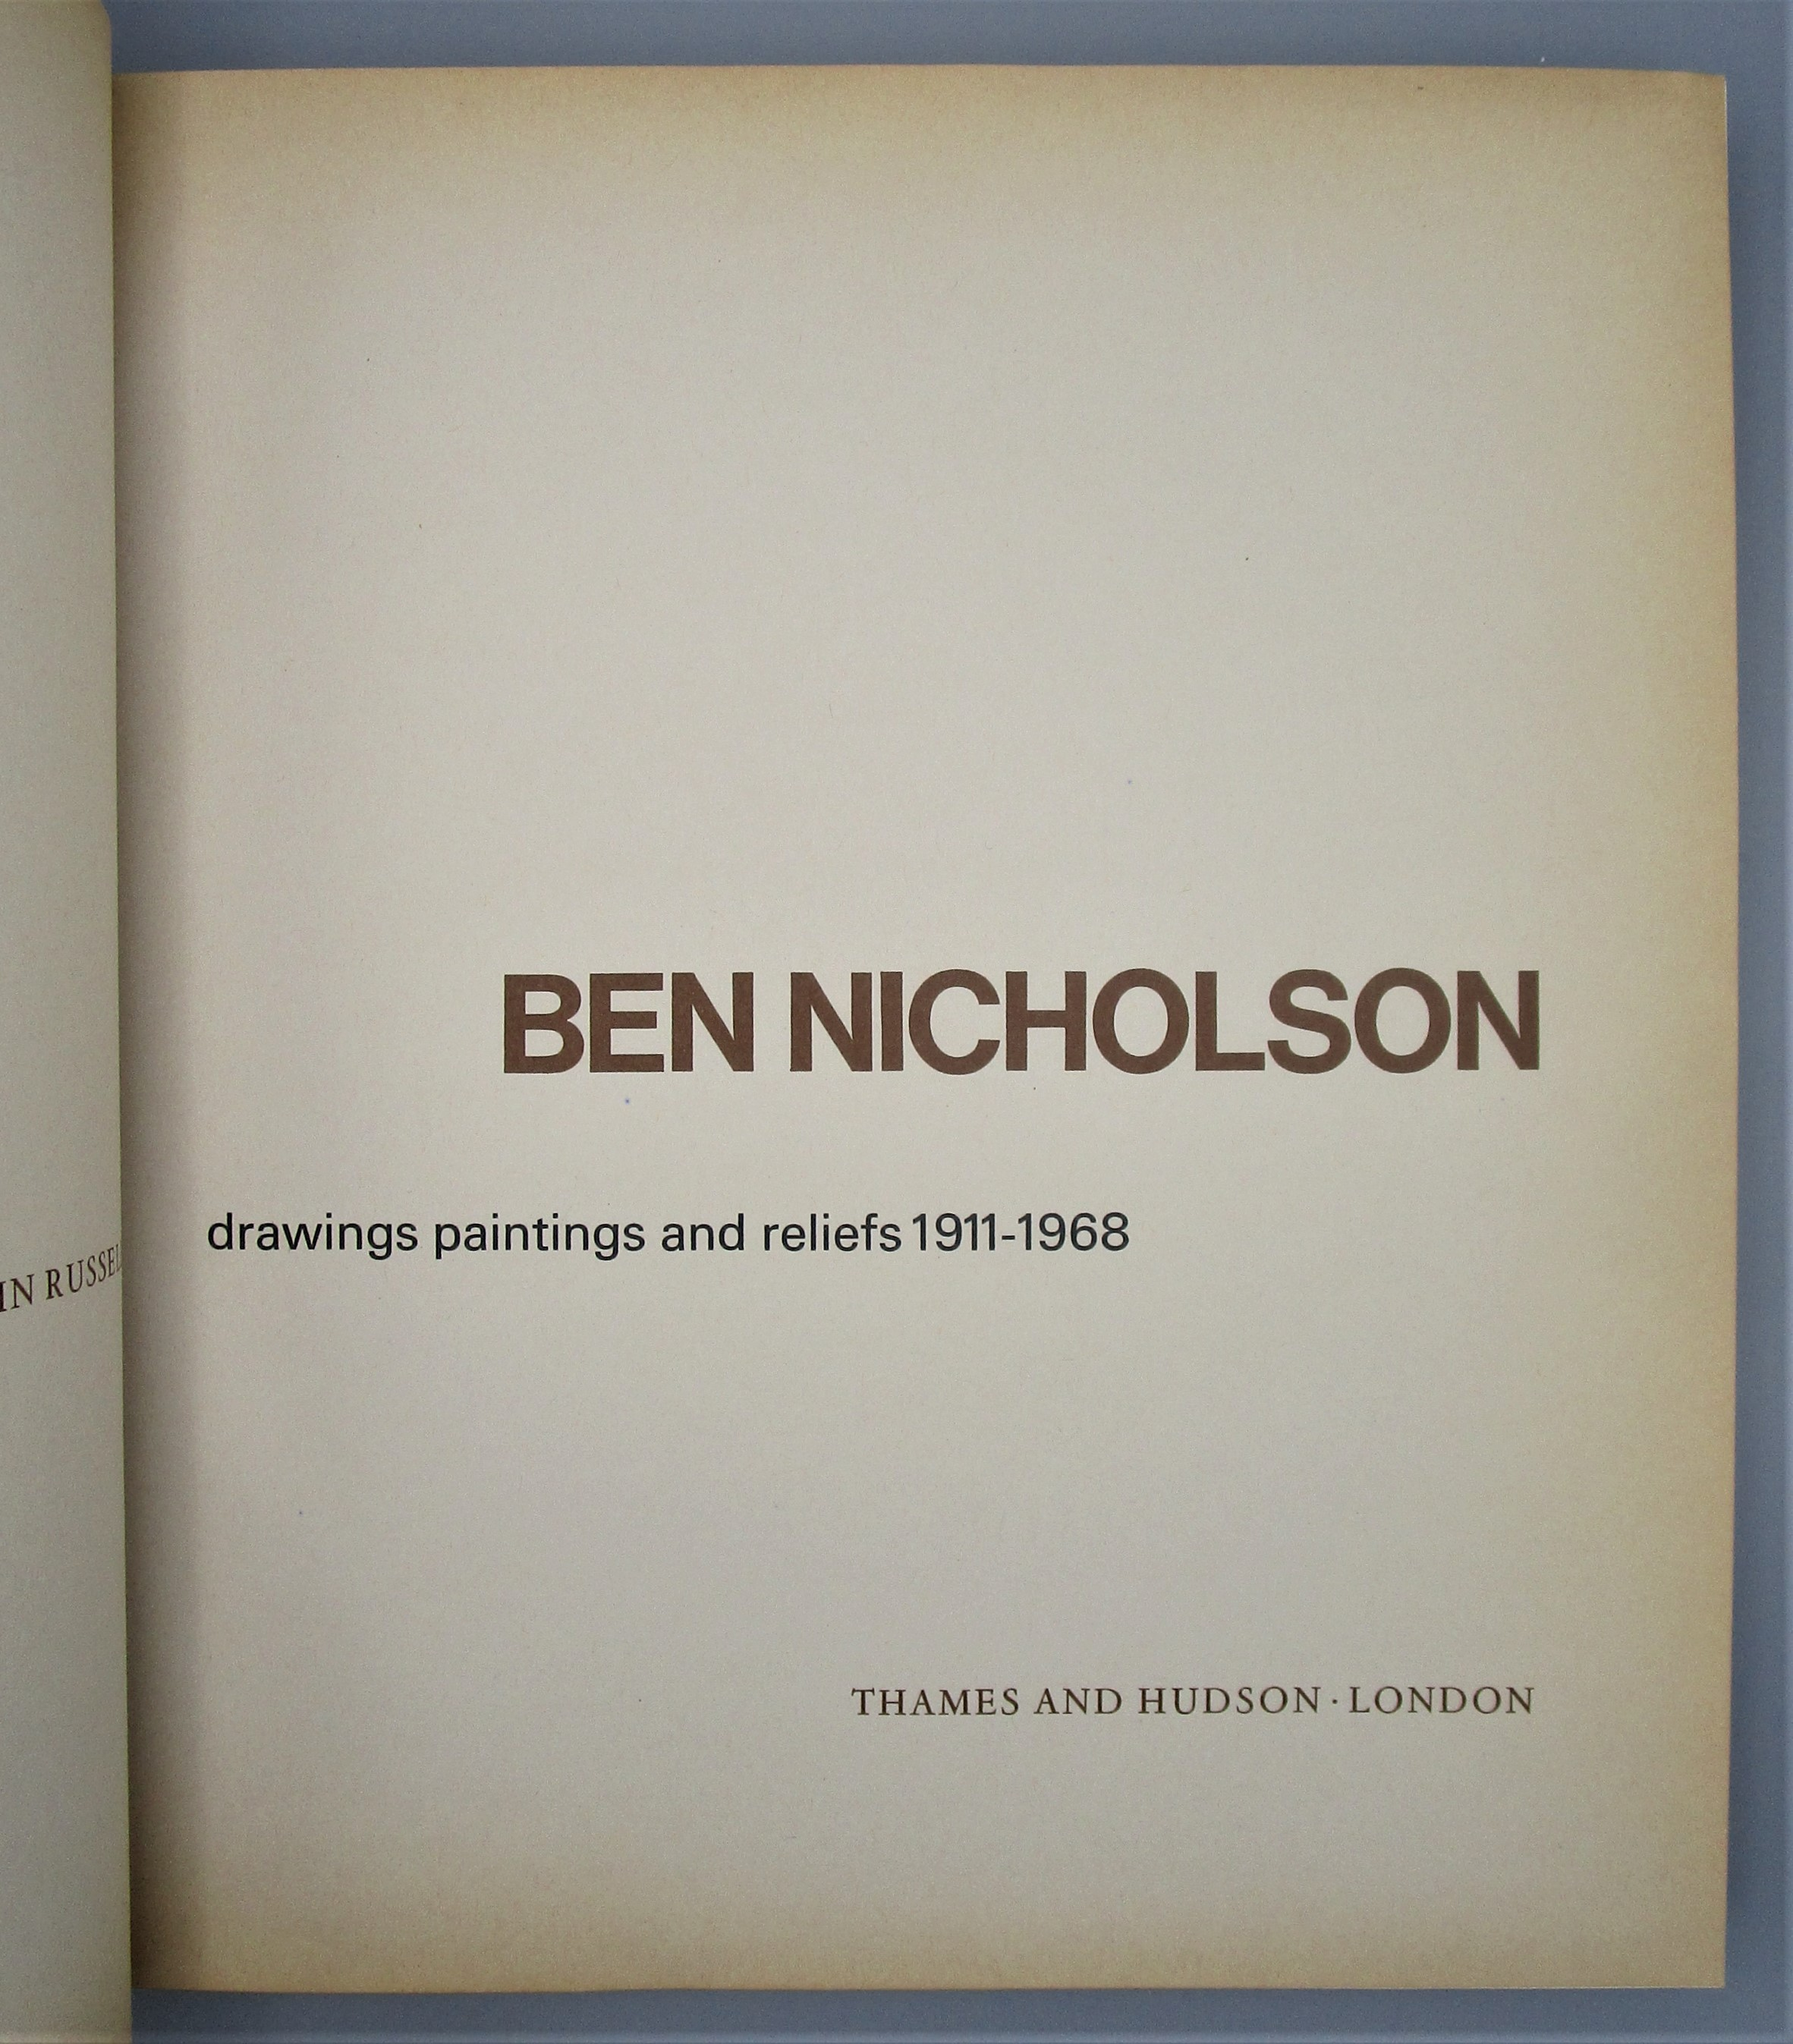 BEN NICHOLSON DRAWINGS PAINTINGS AND RELIEFS, by John russell - 1969